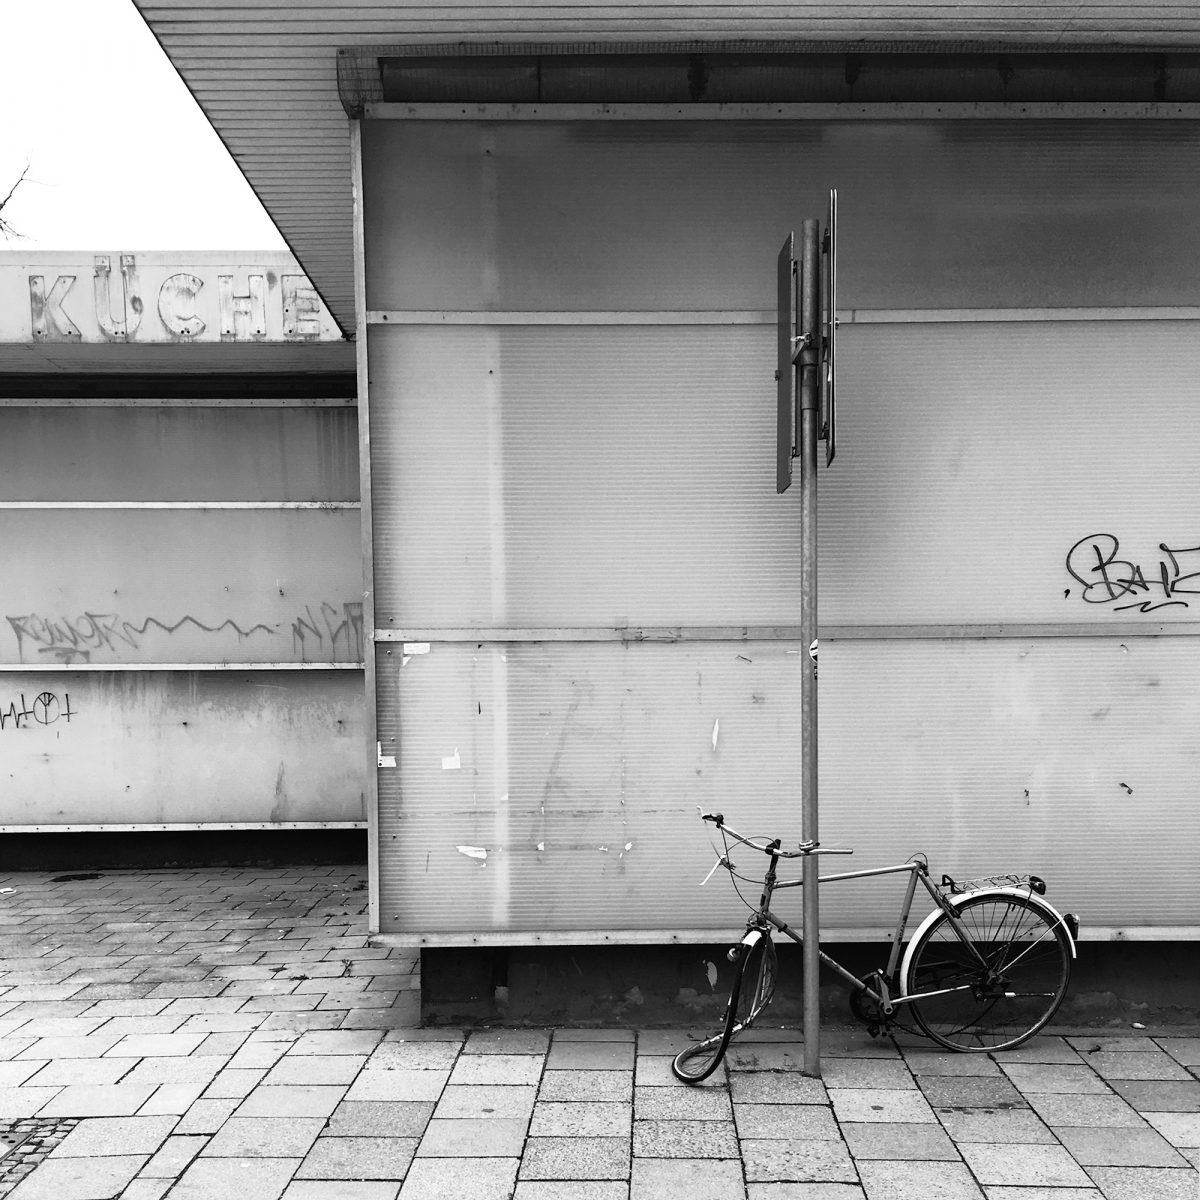 Decommisioned - Building and Bicycle, Karlstraße, Munich, geotagged, Black & White, Graffiti, Phone Camera, Urban